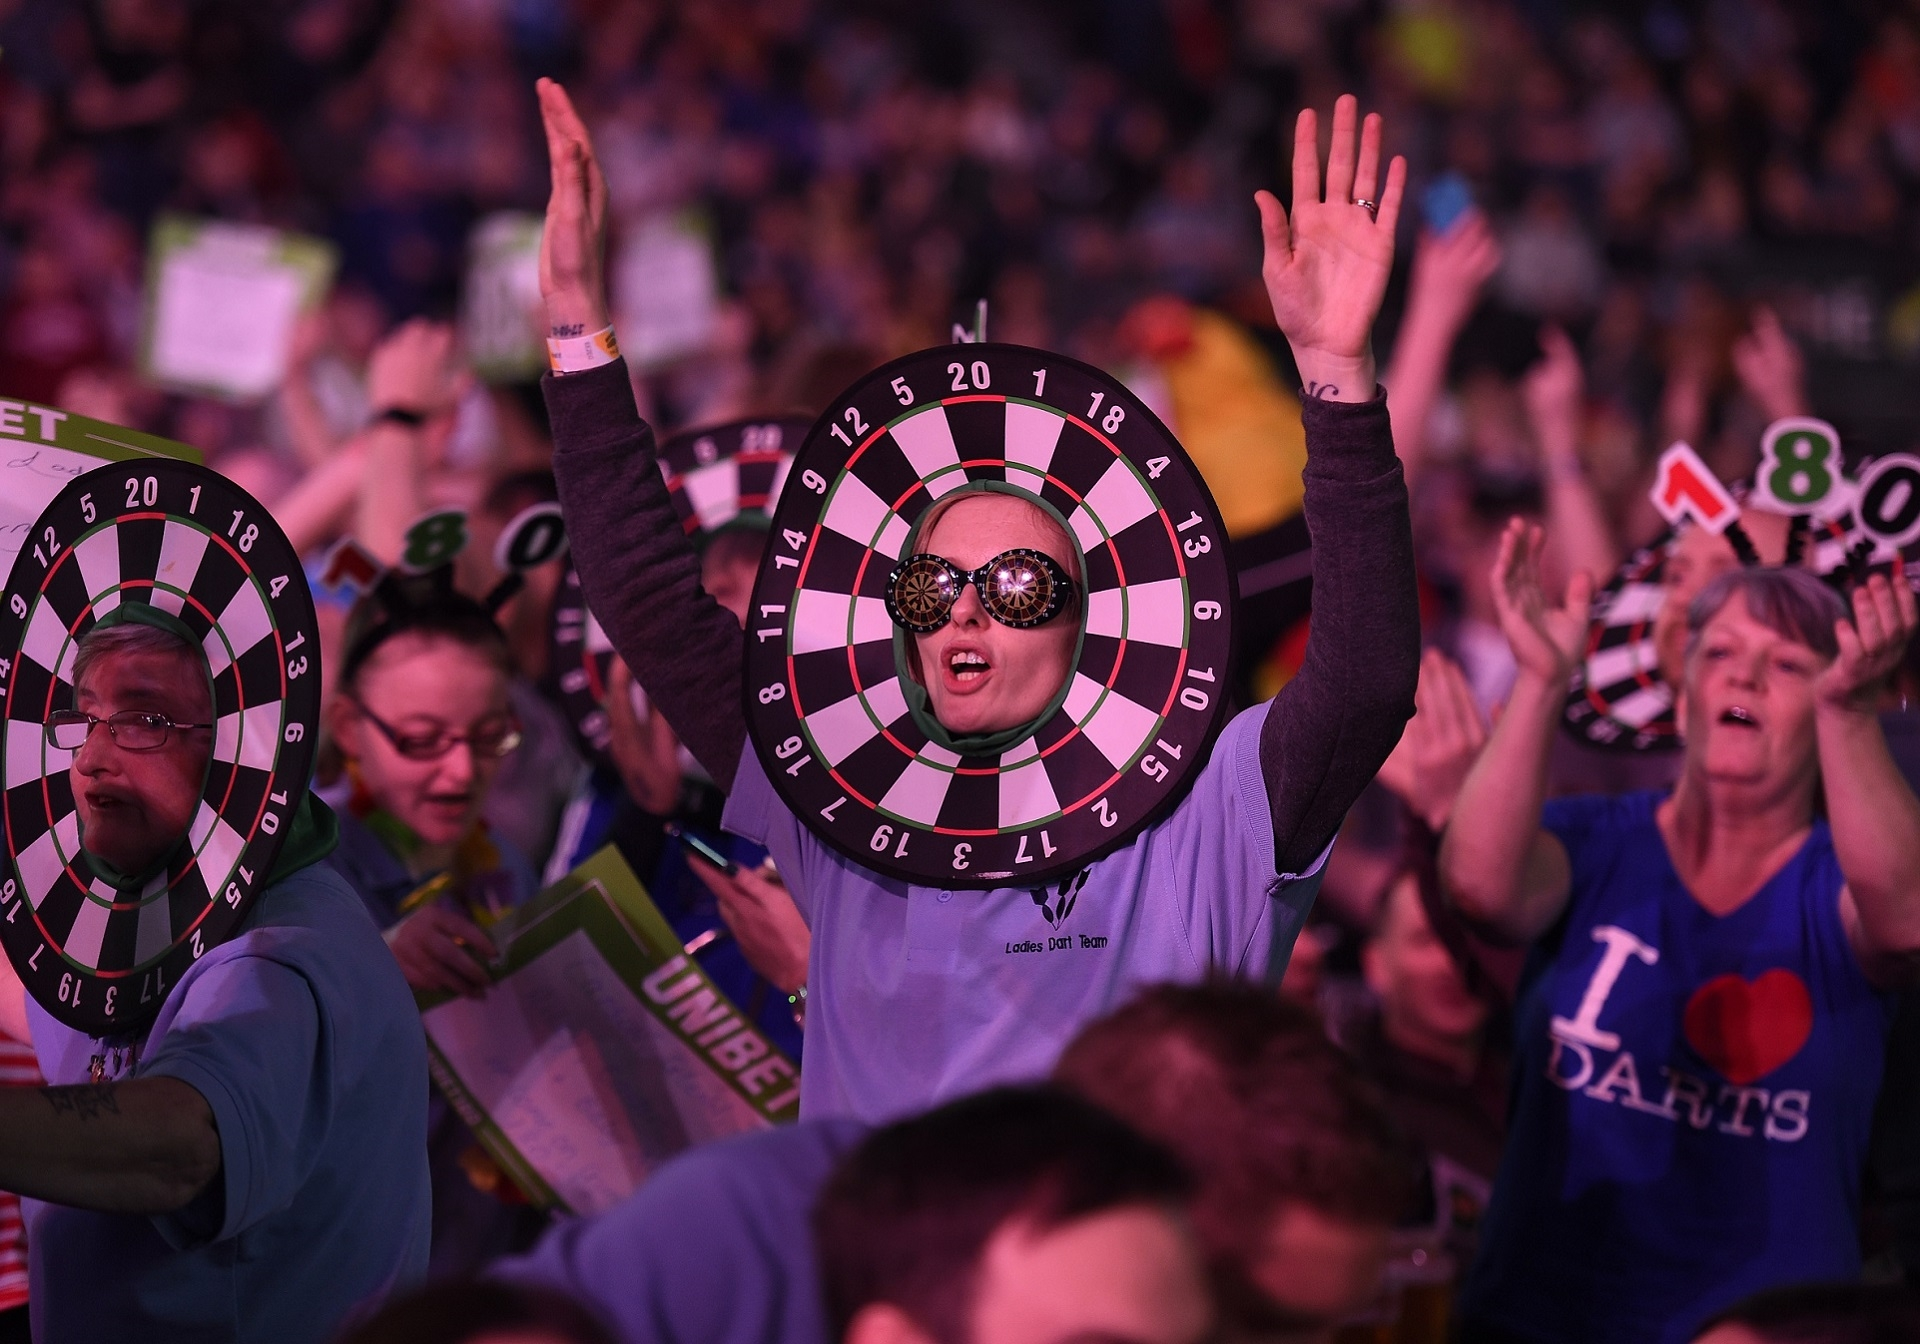 Fans at The SSE Arena (Michael Cooper, PDC)